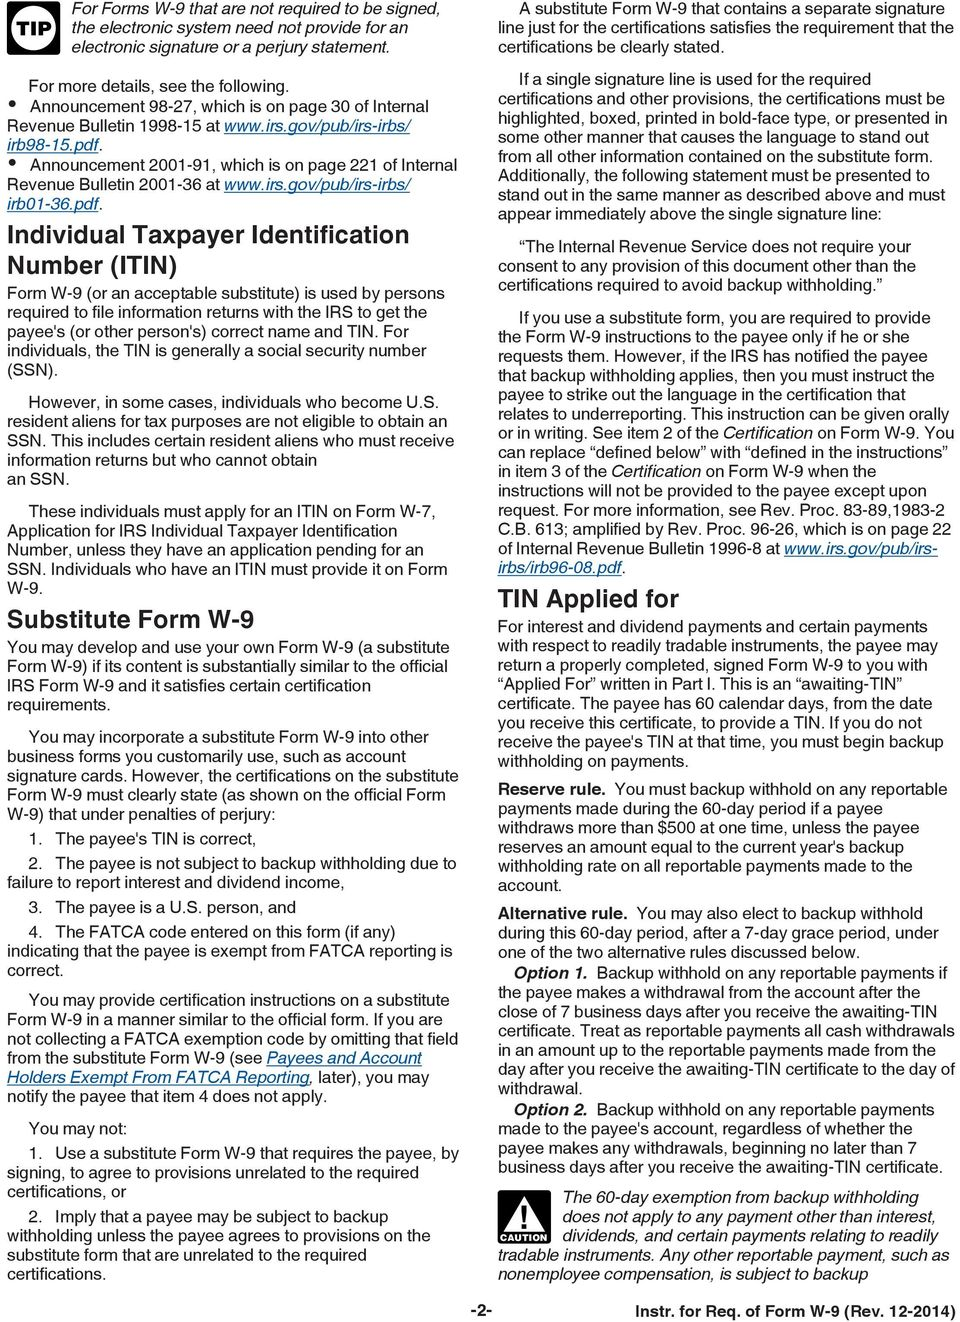 IMPORTANT INFORMATION PLEASE READ BEFORE FILLING OUT FORM - PDF